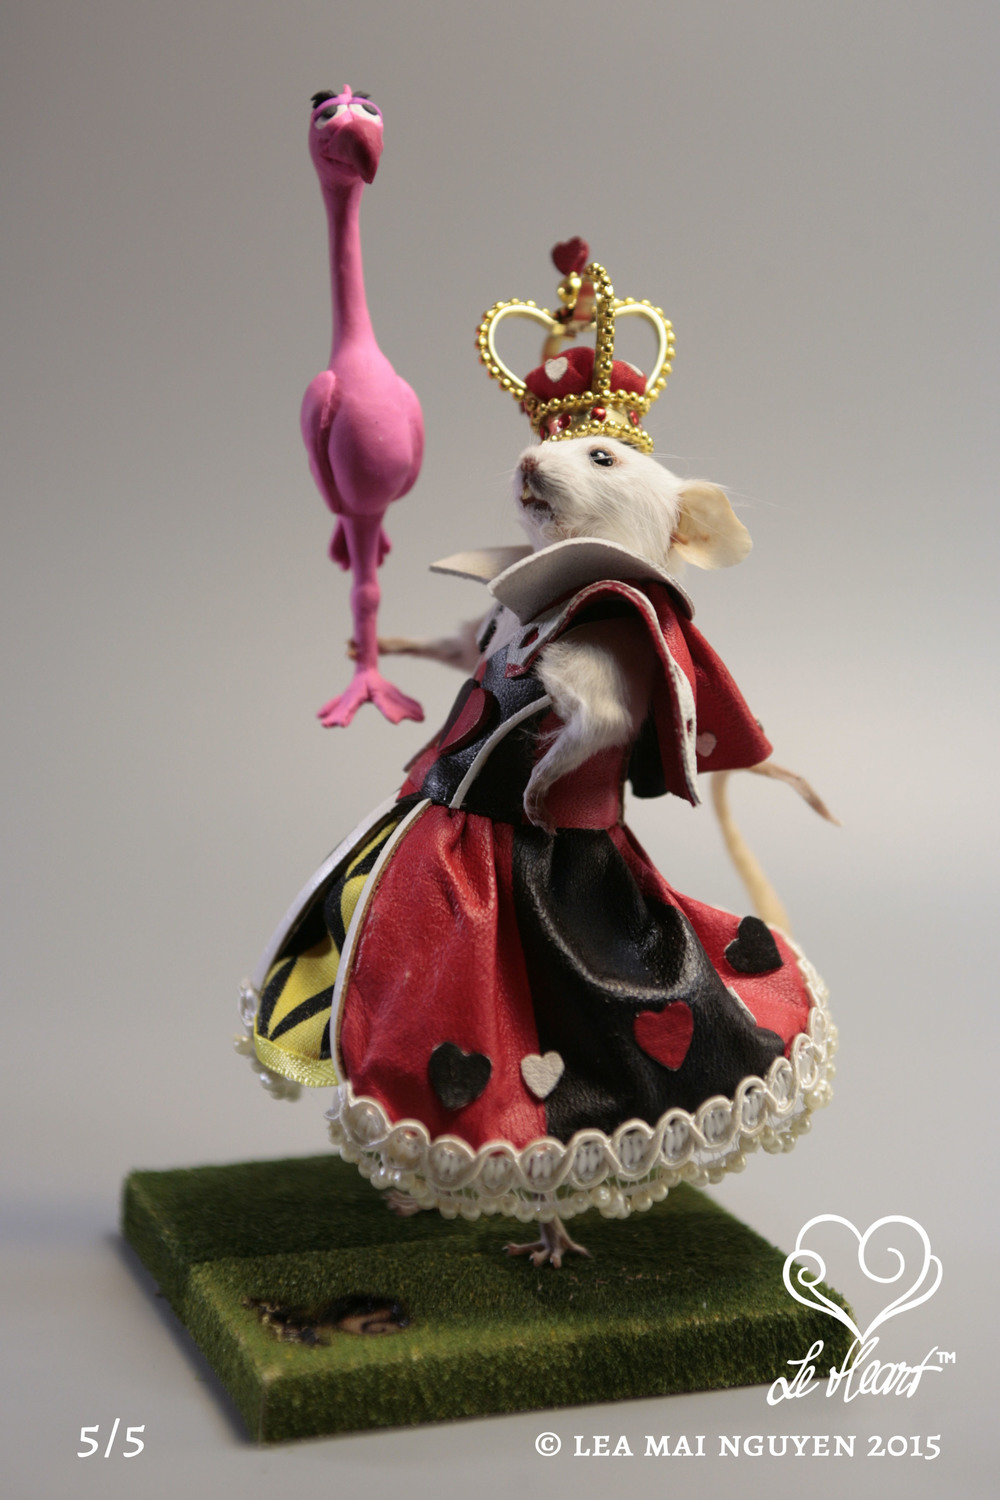 Queen of Hearts 5/5